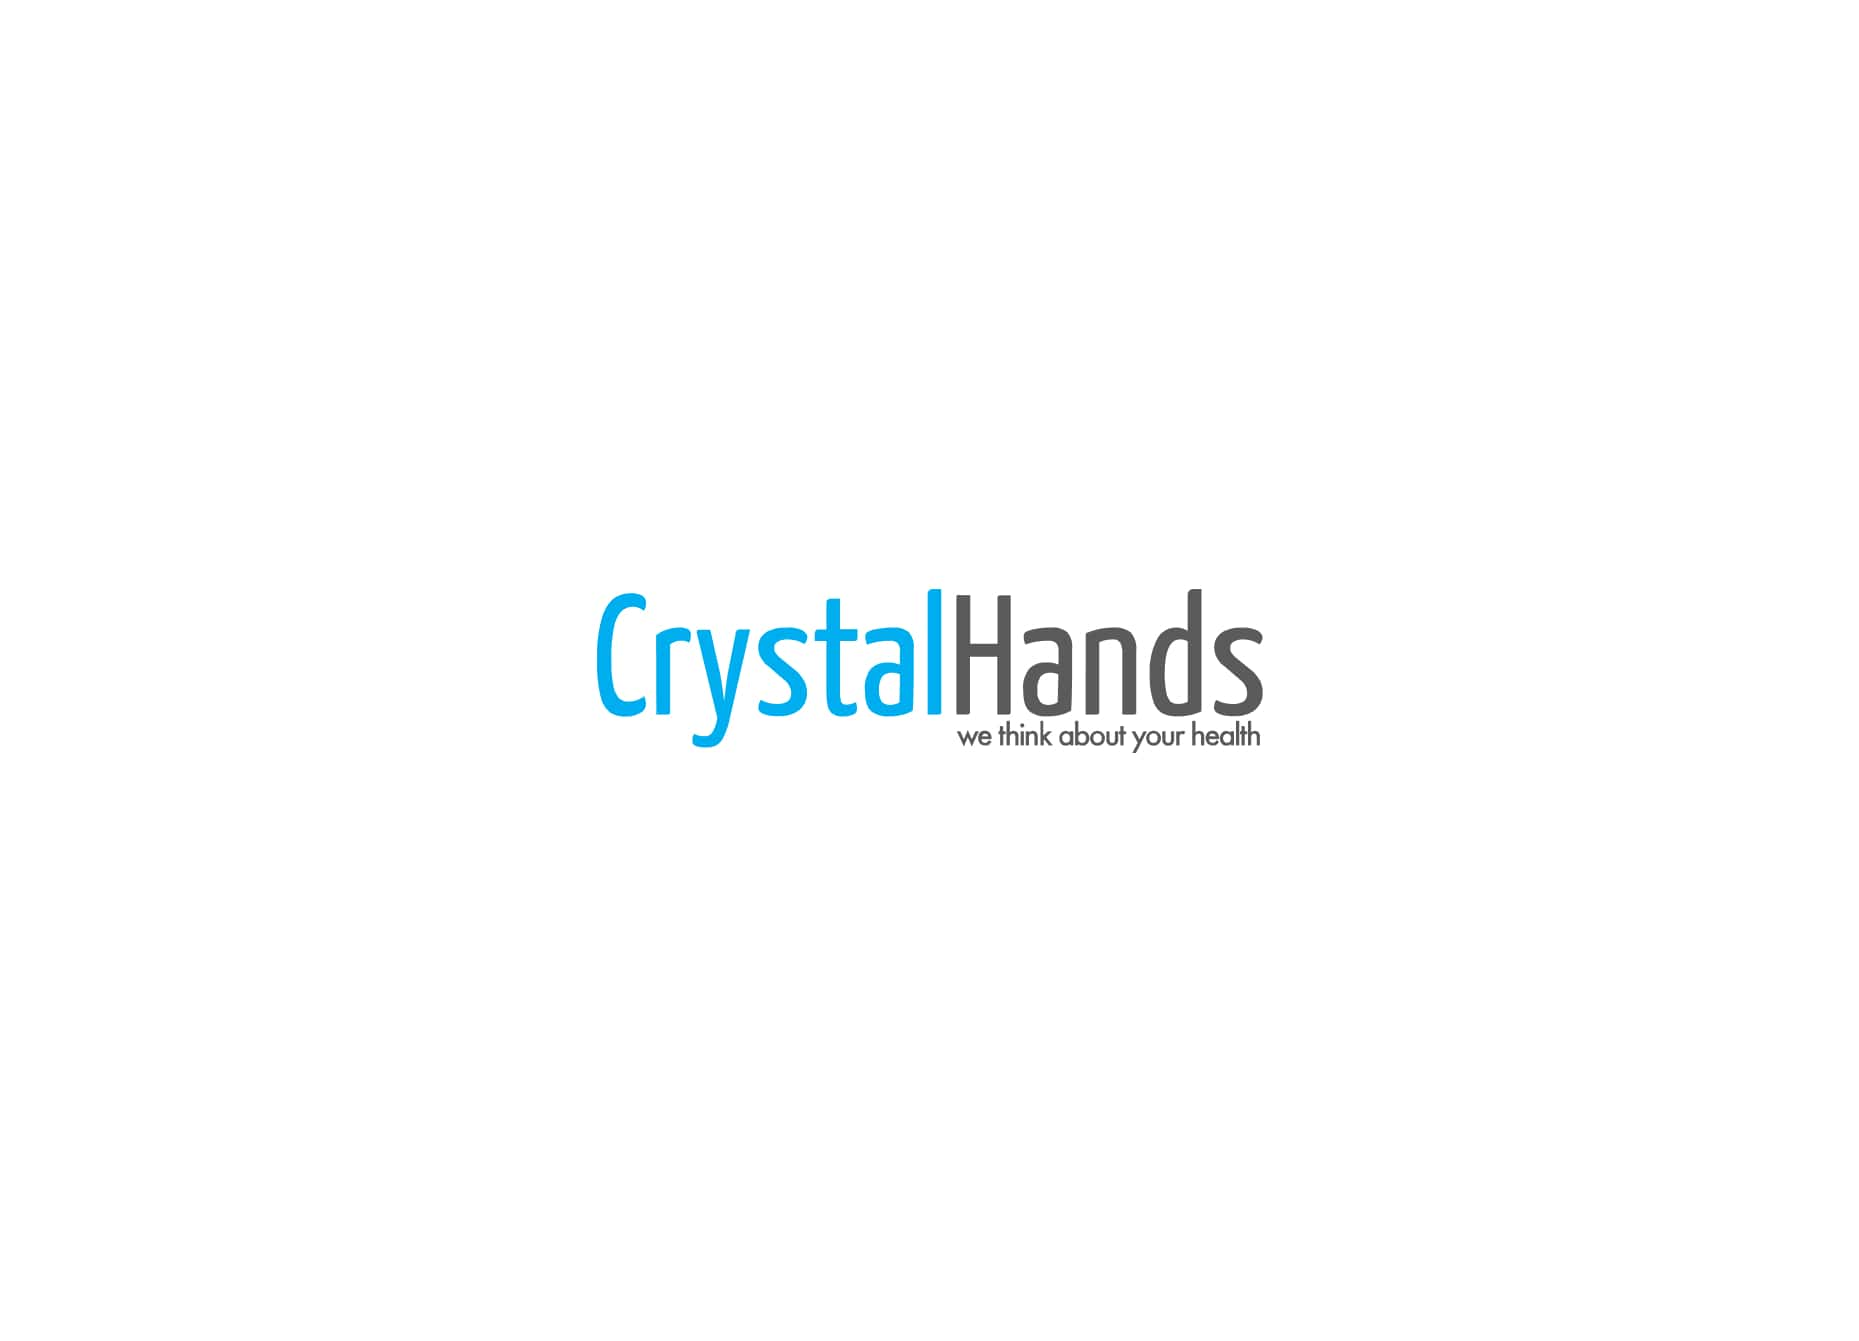 crystal-hands-sanitizer-hand-care-products-gel-disinfectant-handgel